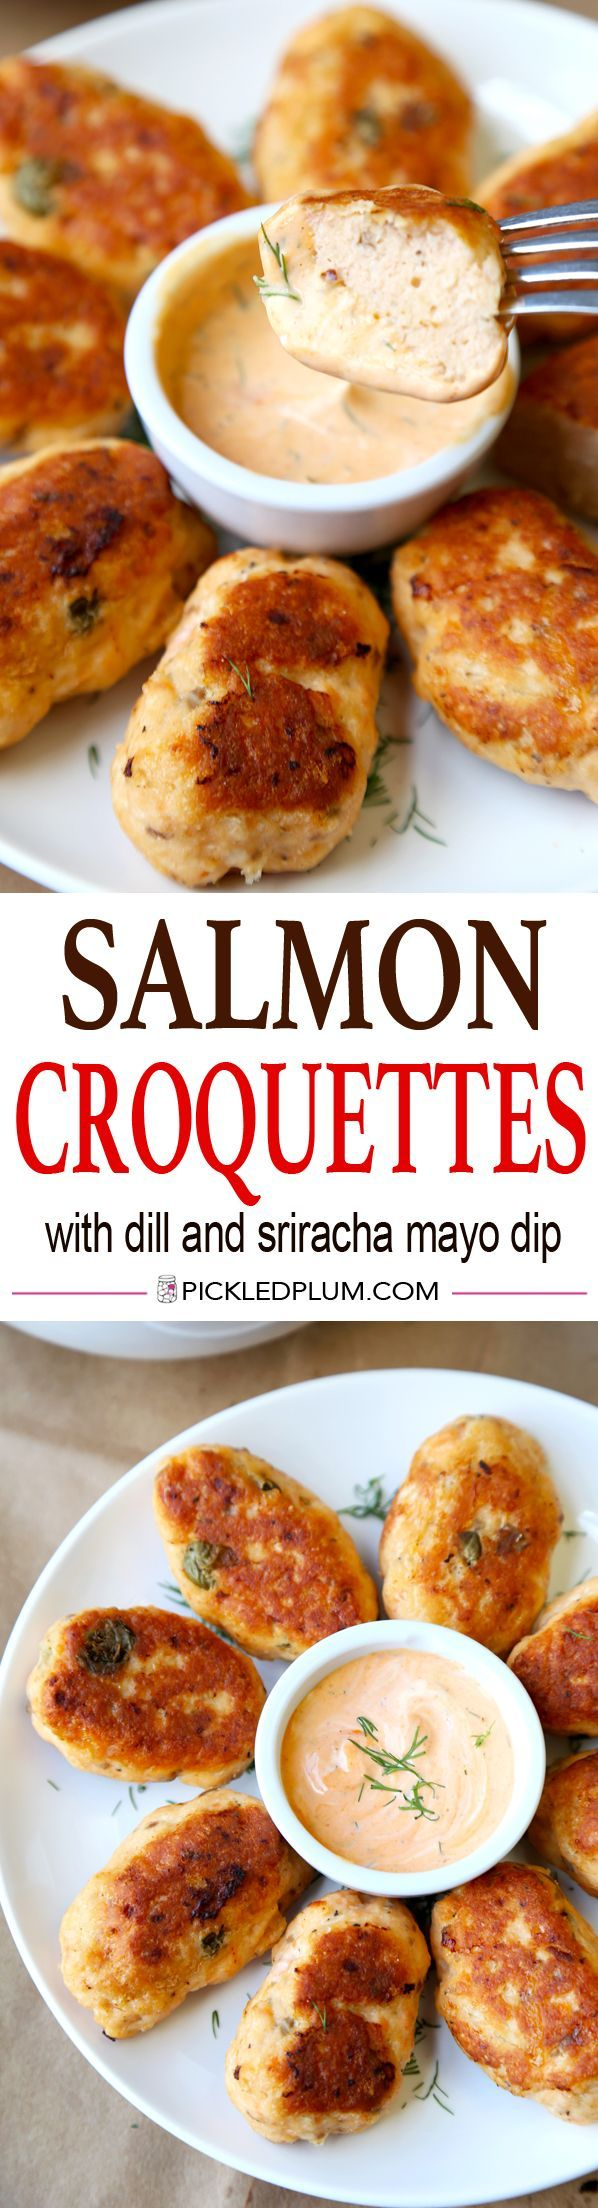 Healthy Salmon Croquettes Recipe with Tangy Dill and Sriracha Dipping Sauce. Light, Tasty and only 20 minutes to make!| pickledplum.com